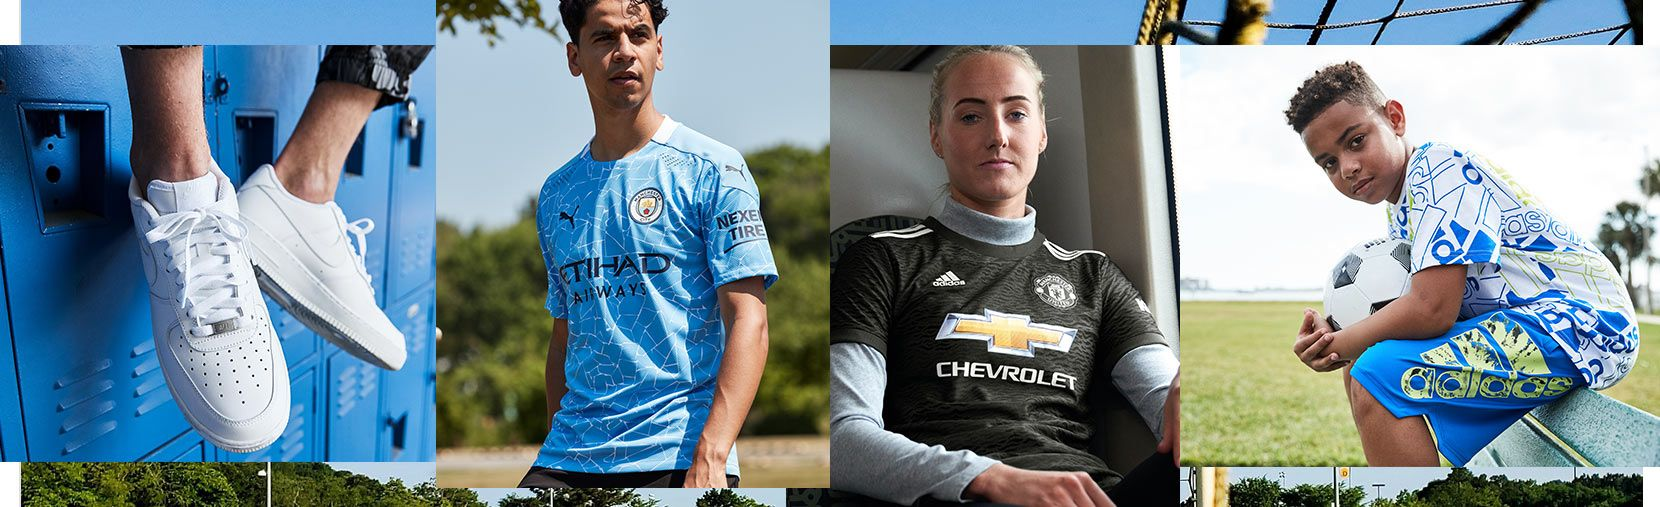 Image is a collage of soccer related apparel, footwear and jerseys.